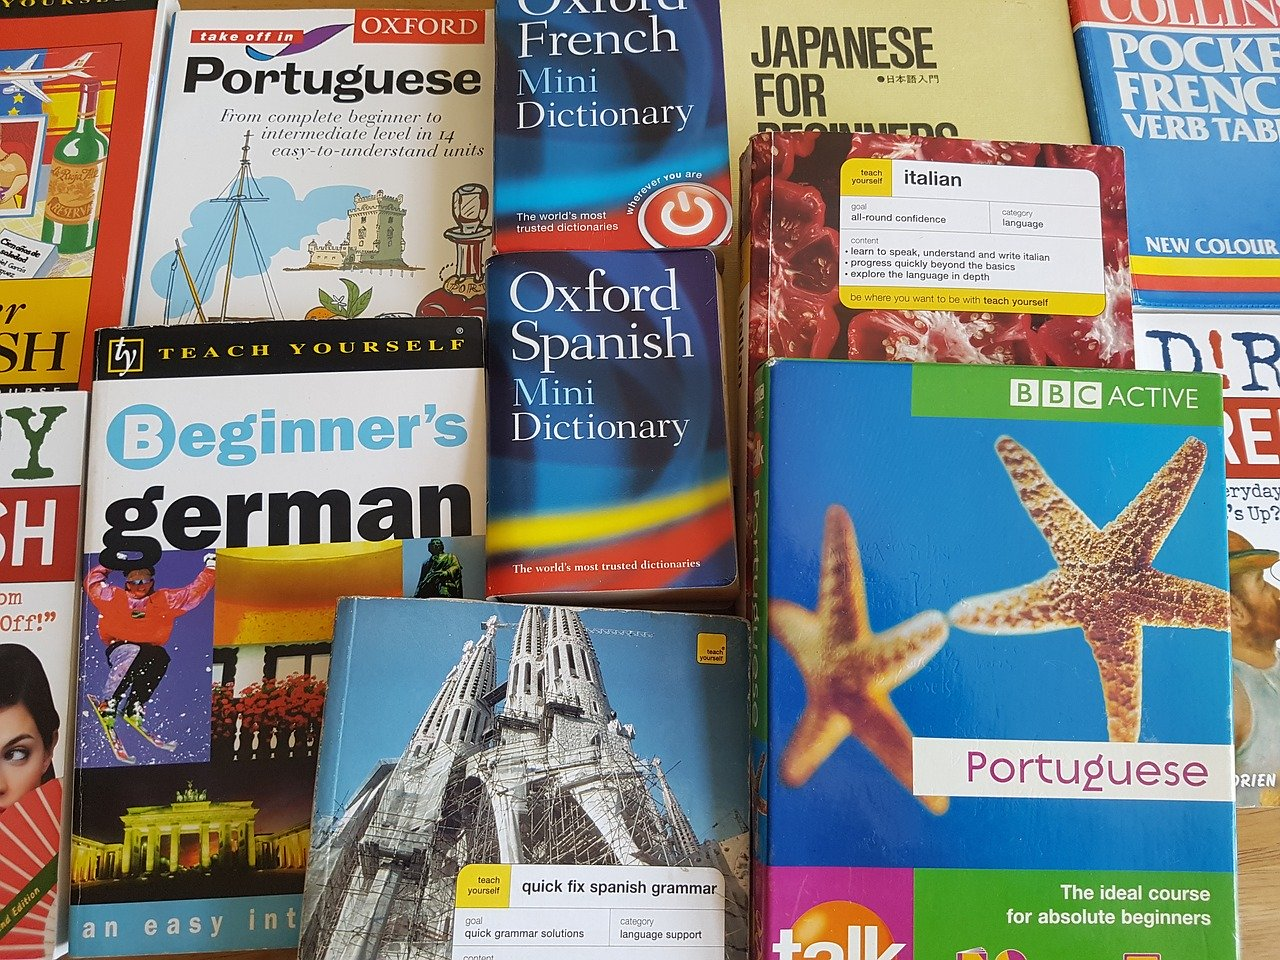 Learning a second language is one of the best ways to cure wanderlust while stuck at home